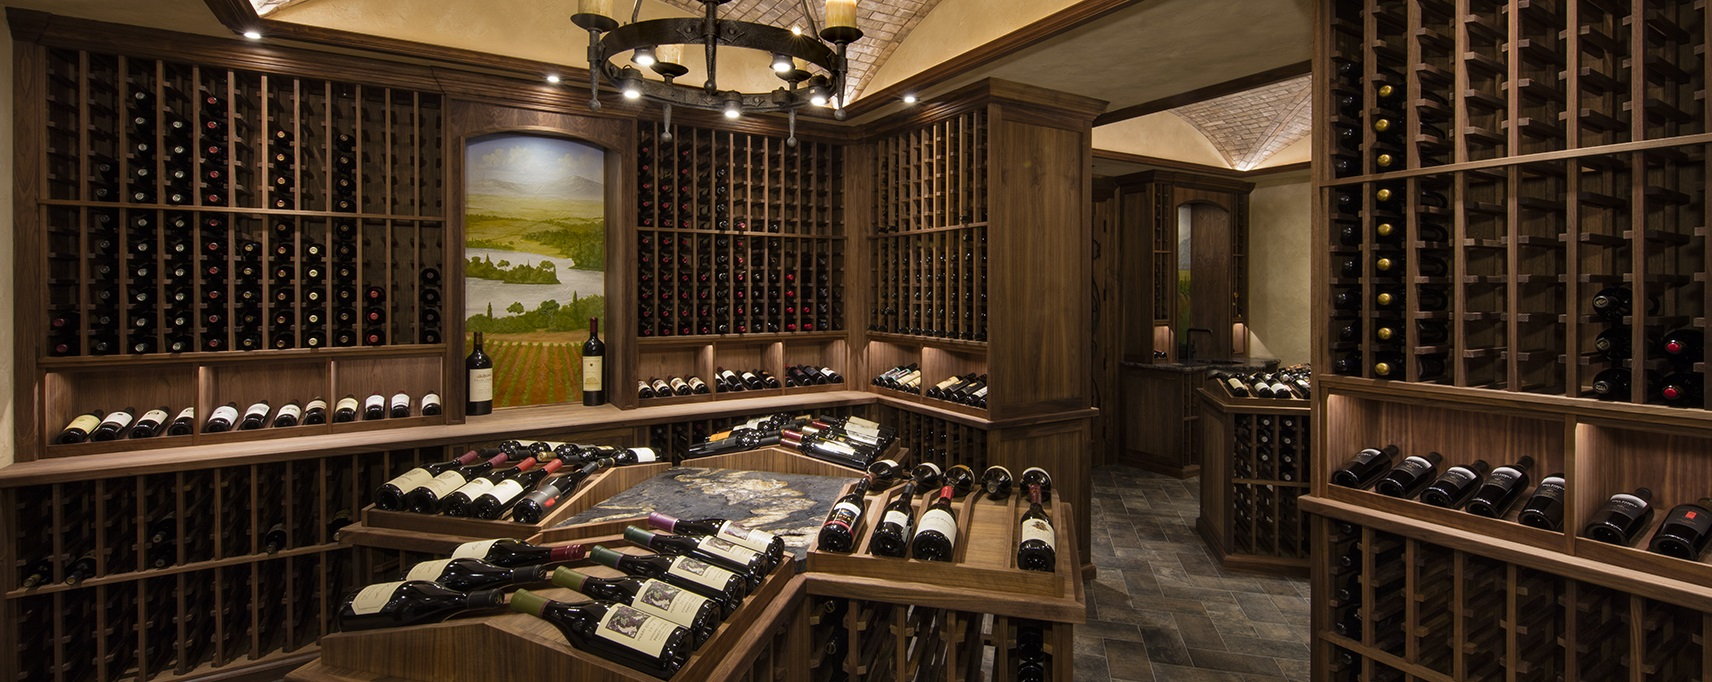 5 Reasons to Invest in a Wine Cellar